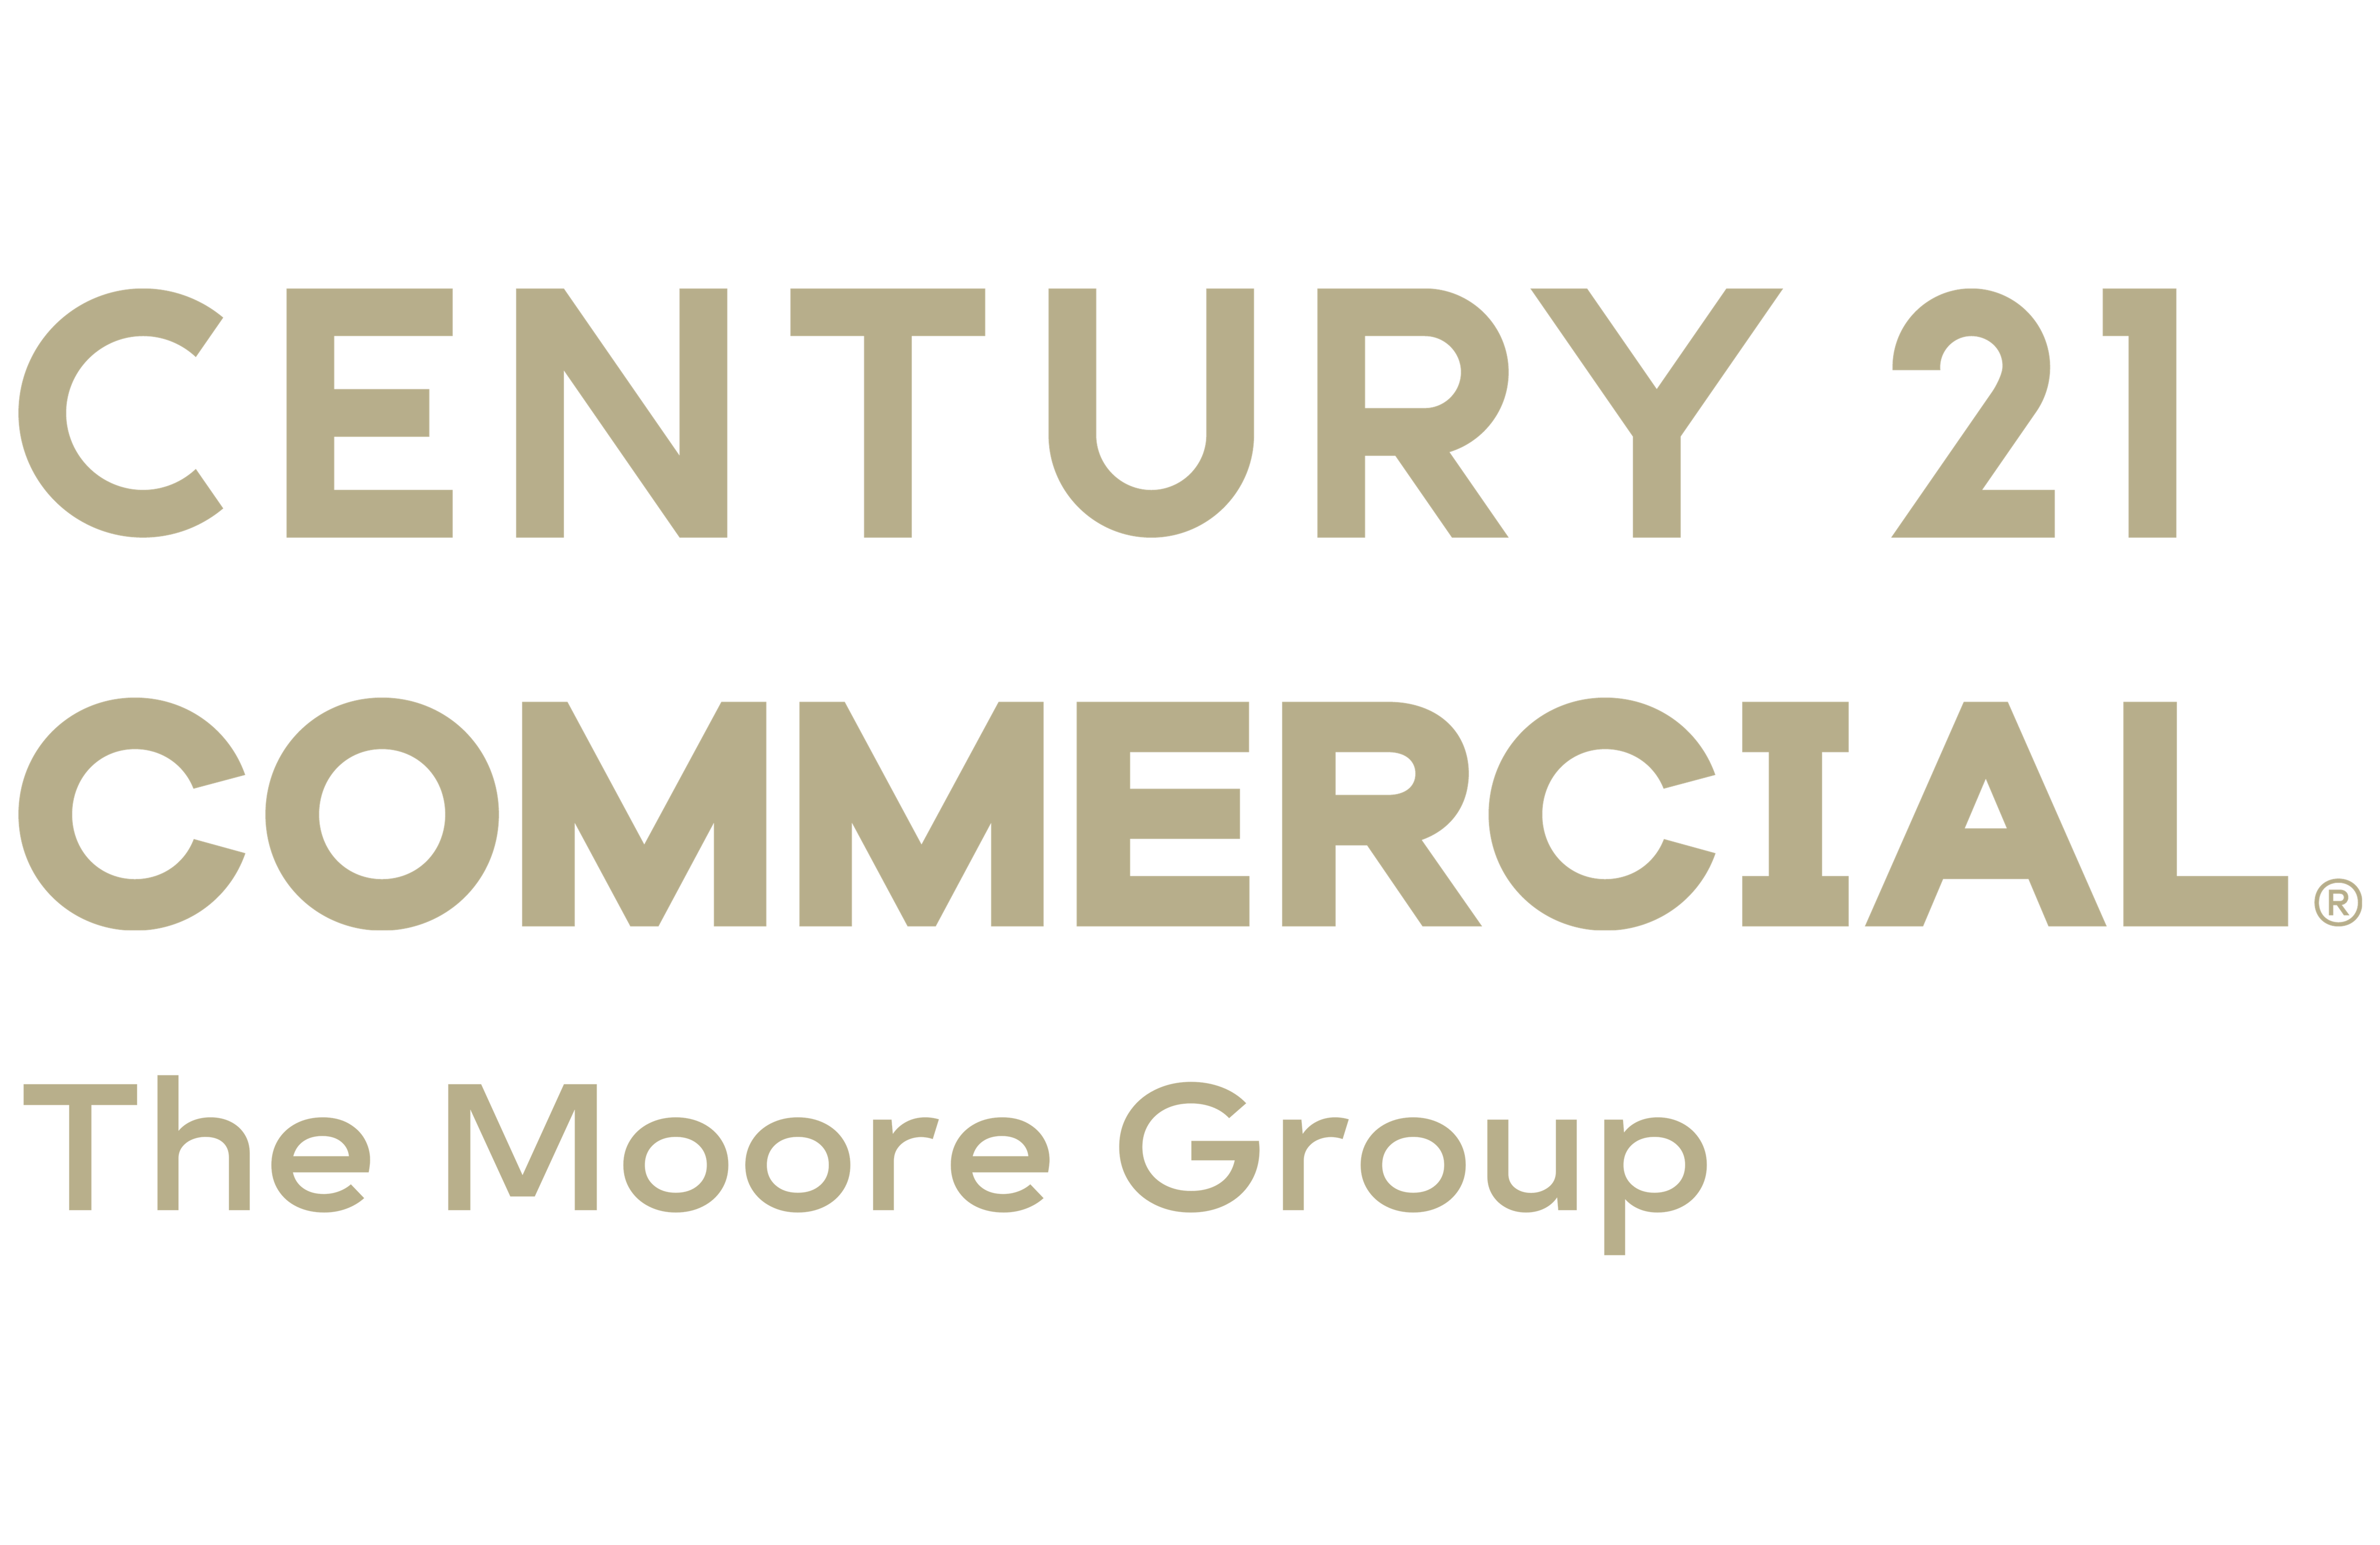 Cal Bruner of CENTURY 21 The Moore Group logo